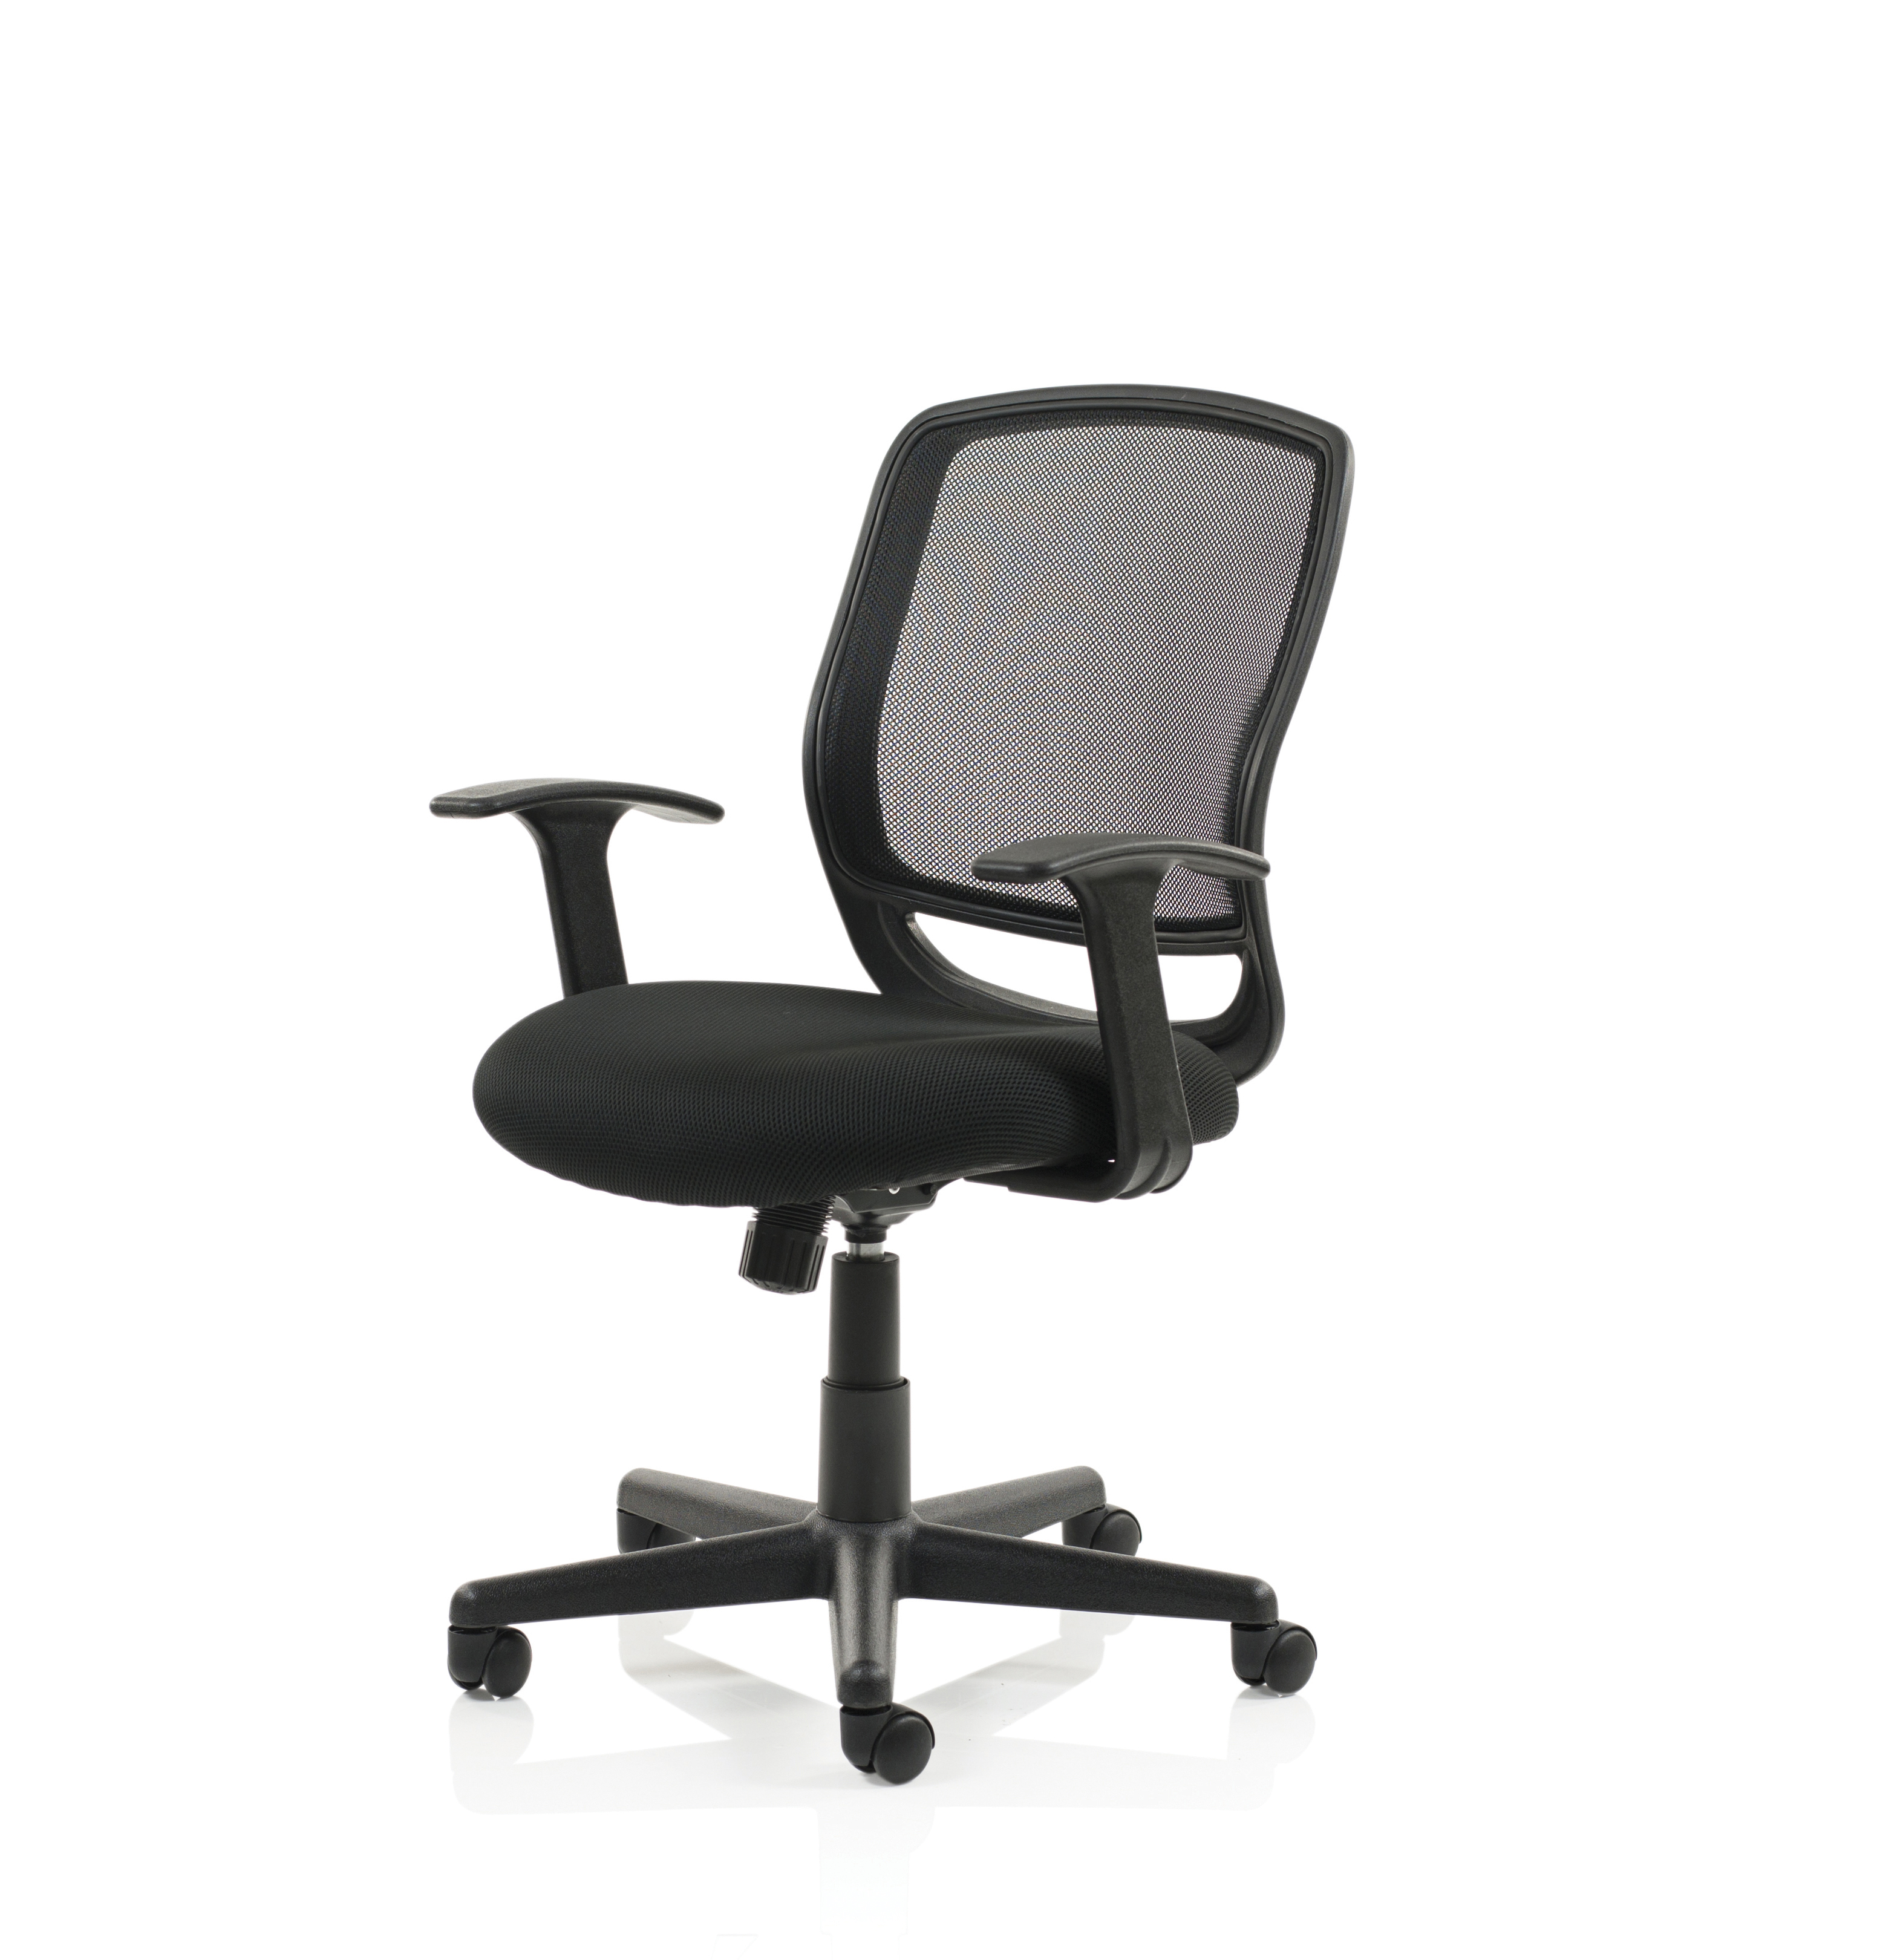 Executive Chairs Mave Chair Black Mesh With Arms EX000193